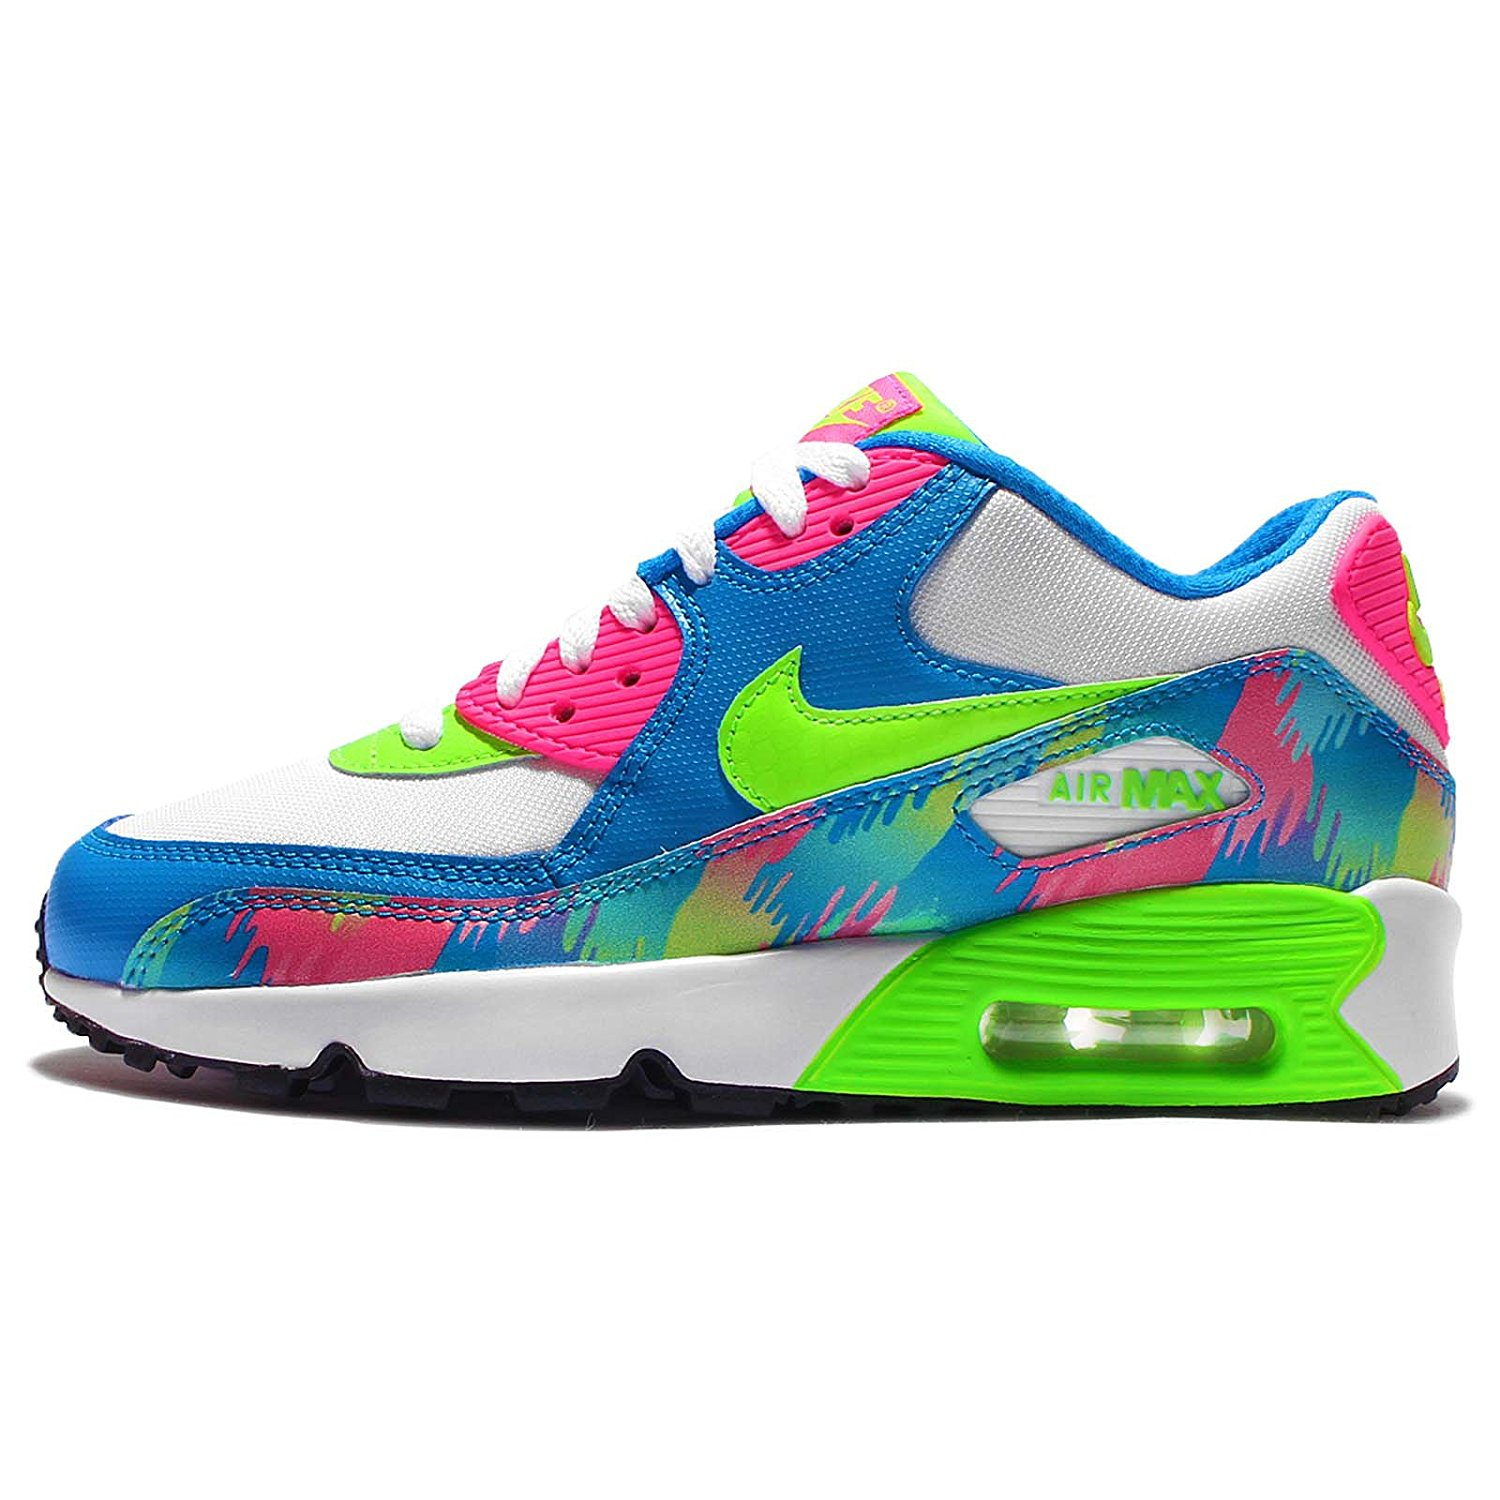 official photos cd7ca 1bd32 Get Quotations · NIKE AIR MAX 90 PRINT MESH GS Girls sneakers 833497